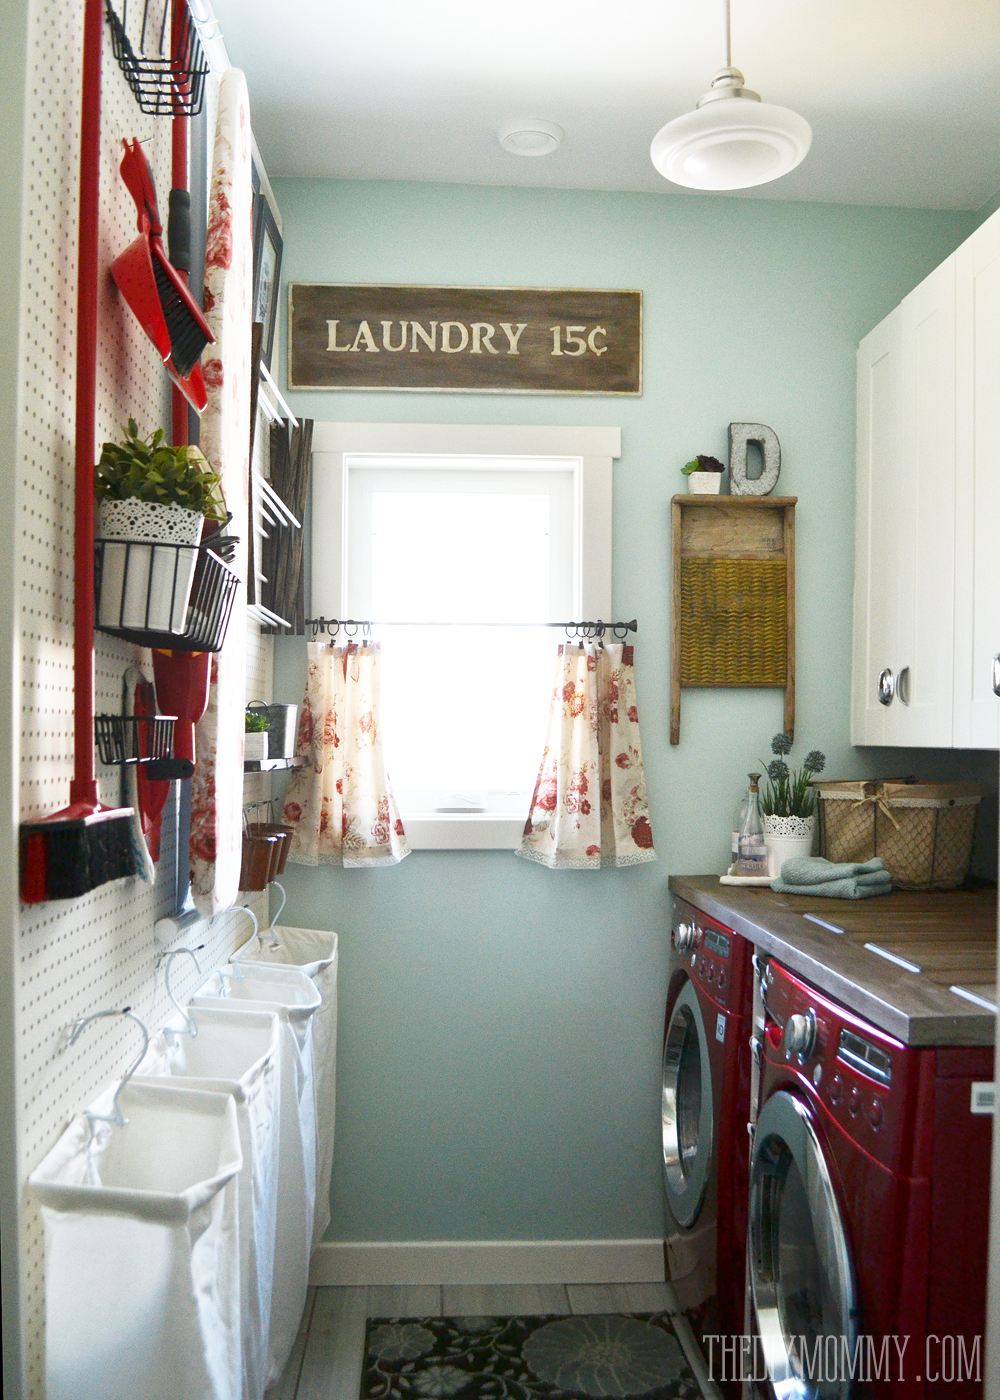 Vintage-Red-Aqua-Pegboard-Laundry-Room-Design-Ideas-2 Paint Ideas For Vintage Kitchen on vintage kitchen counter ideas, vintage kitchen flooring ideas, vintage kitchen remodeling ideas, vintage kitchen floor ideas, vintage kitchen decorating ideas, vintage kitchen lighting ideas,